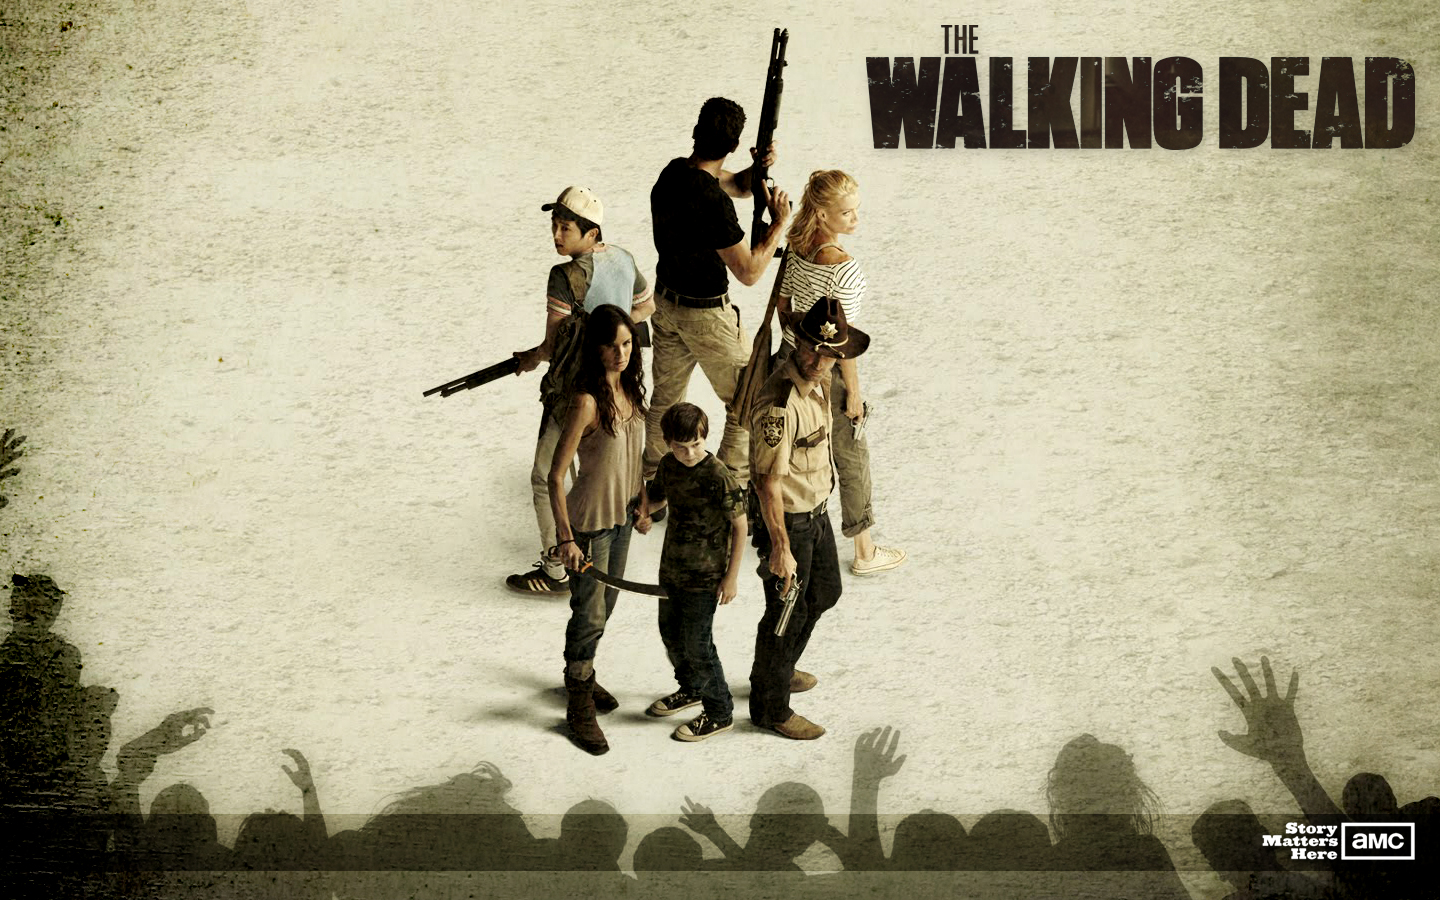 The Walking Dead is a television drama series developed by Frank 1440x900